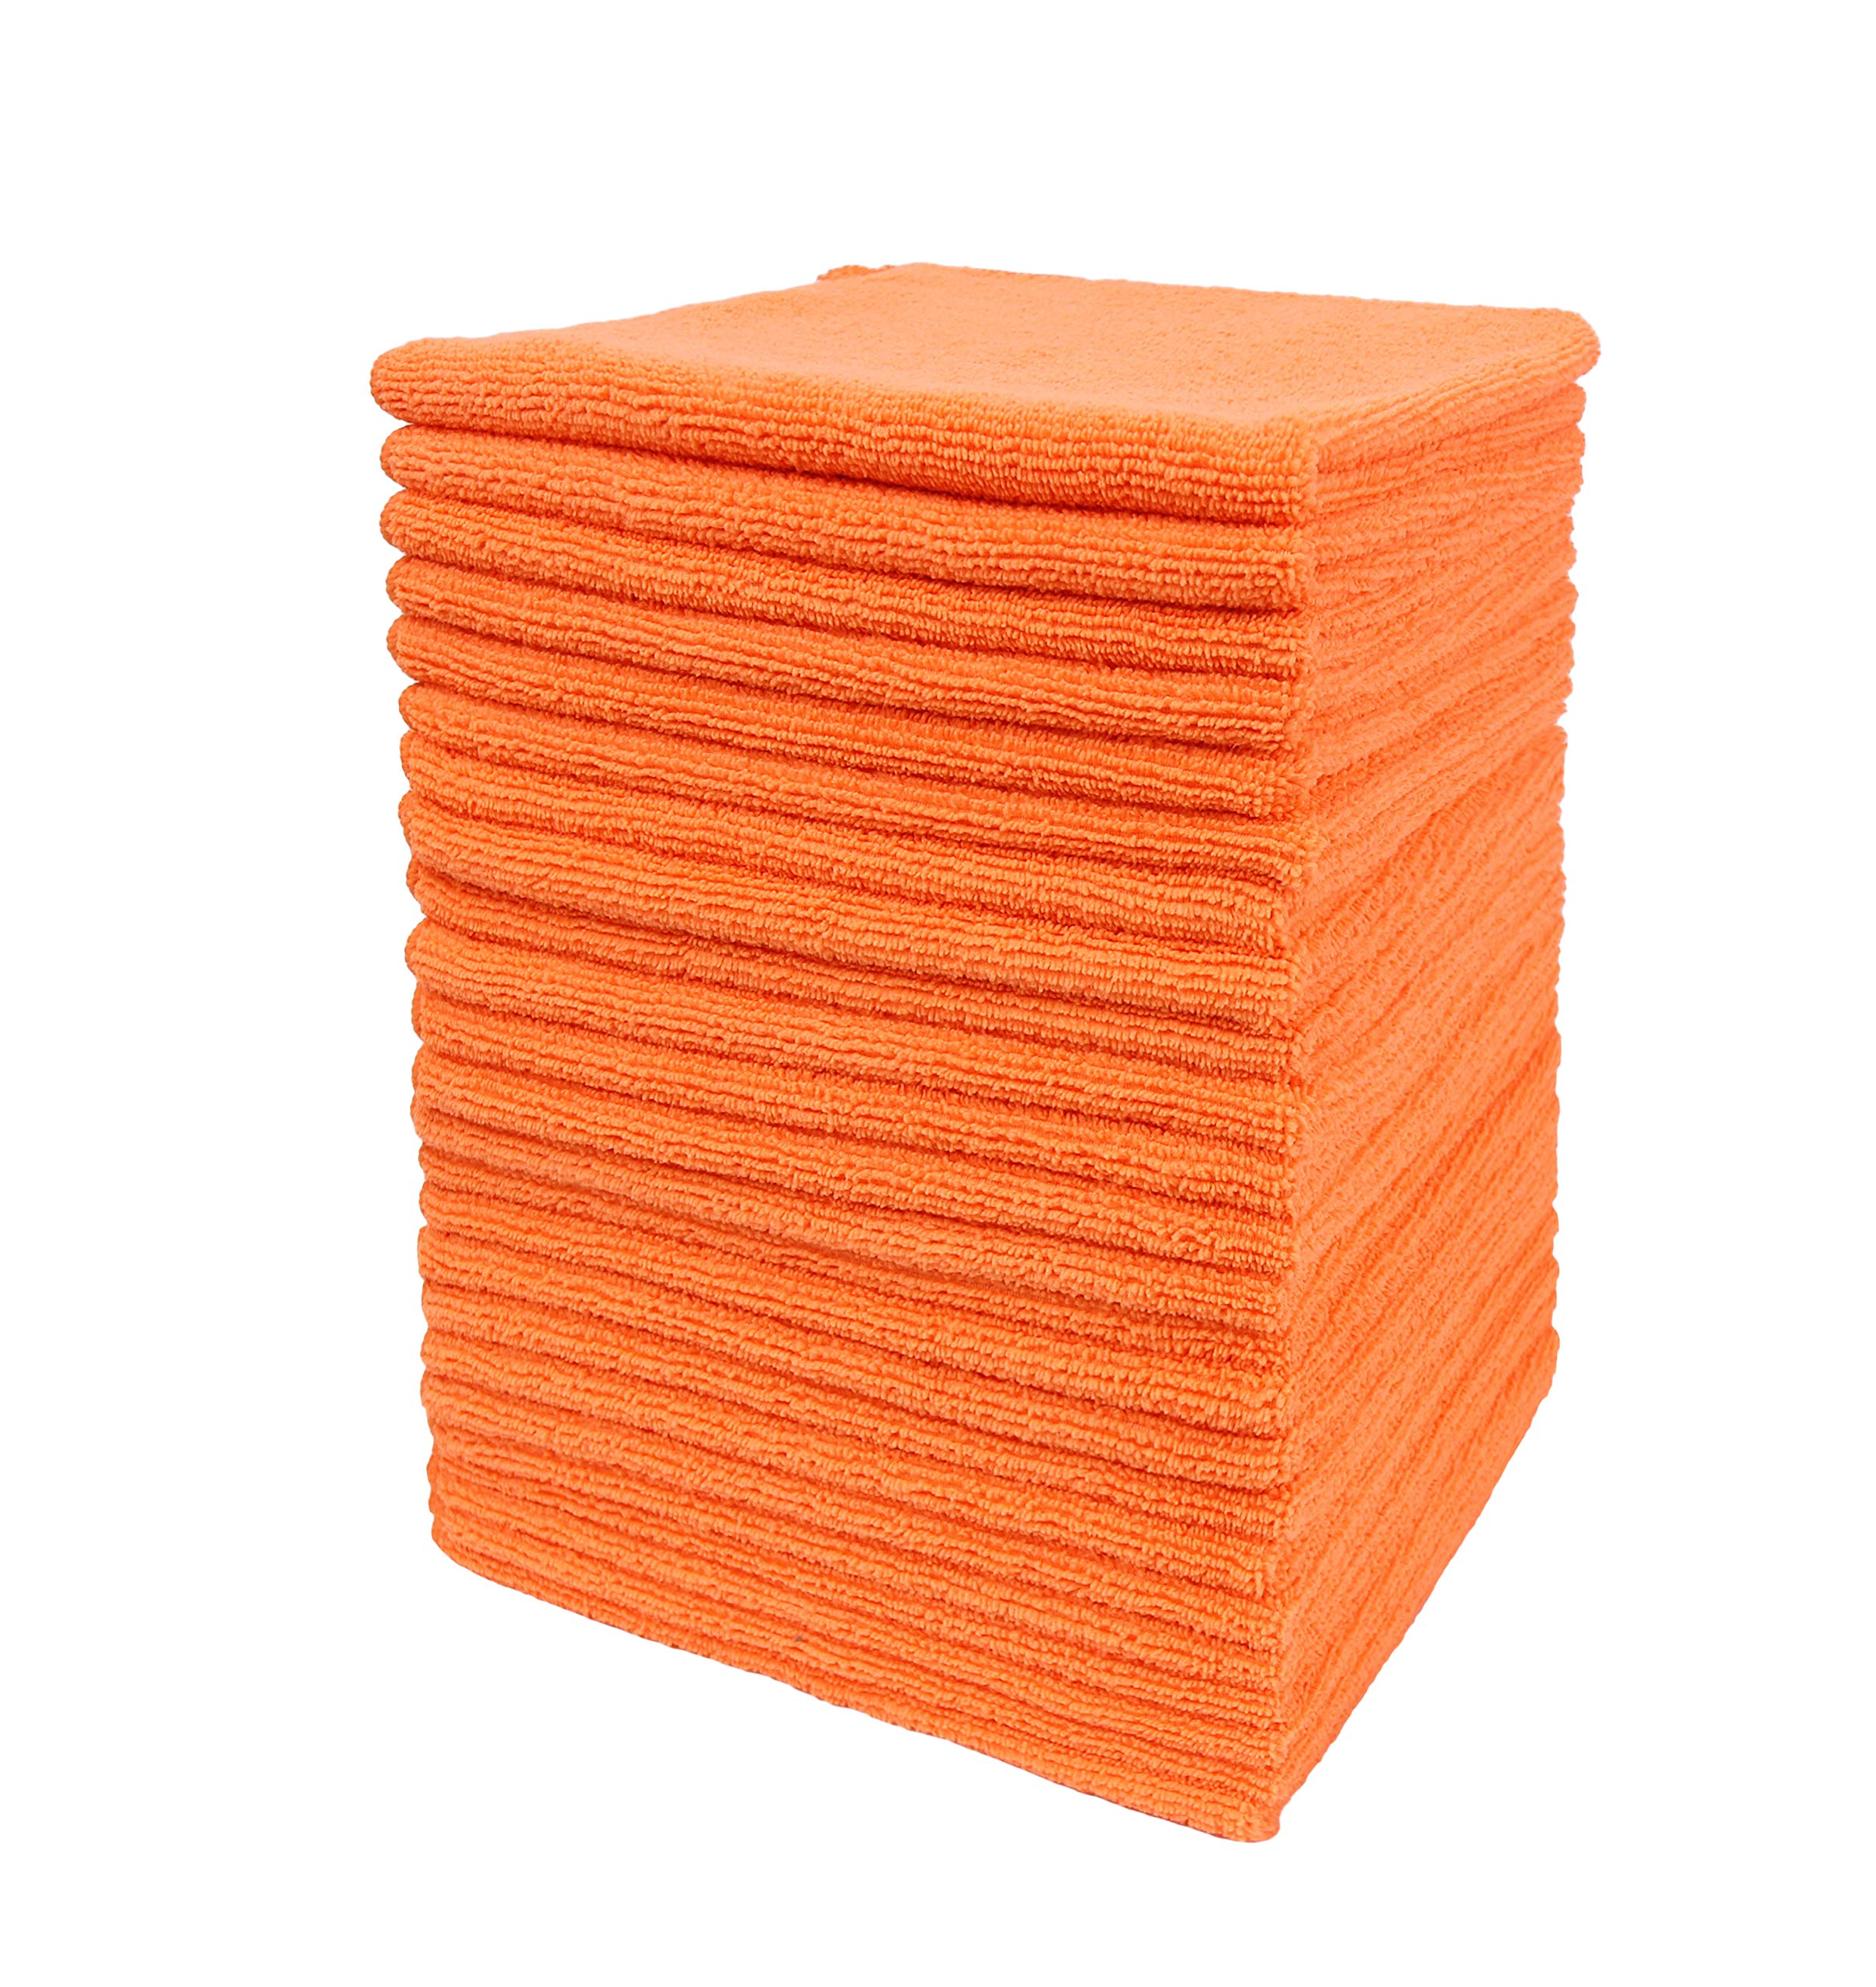 Dri Microfiber Cleaning Cloth Plus 16 x 16 inch (Commerical Grade, Extra Absorb, Cleaning Power and Dry Fast) (240, Orange)